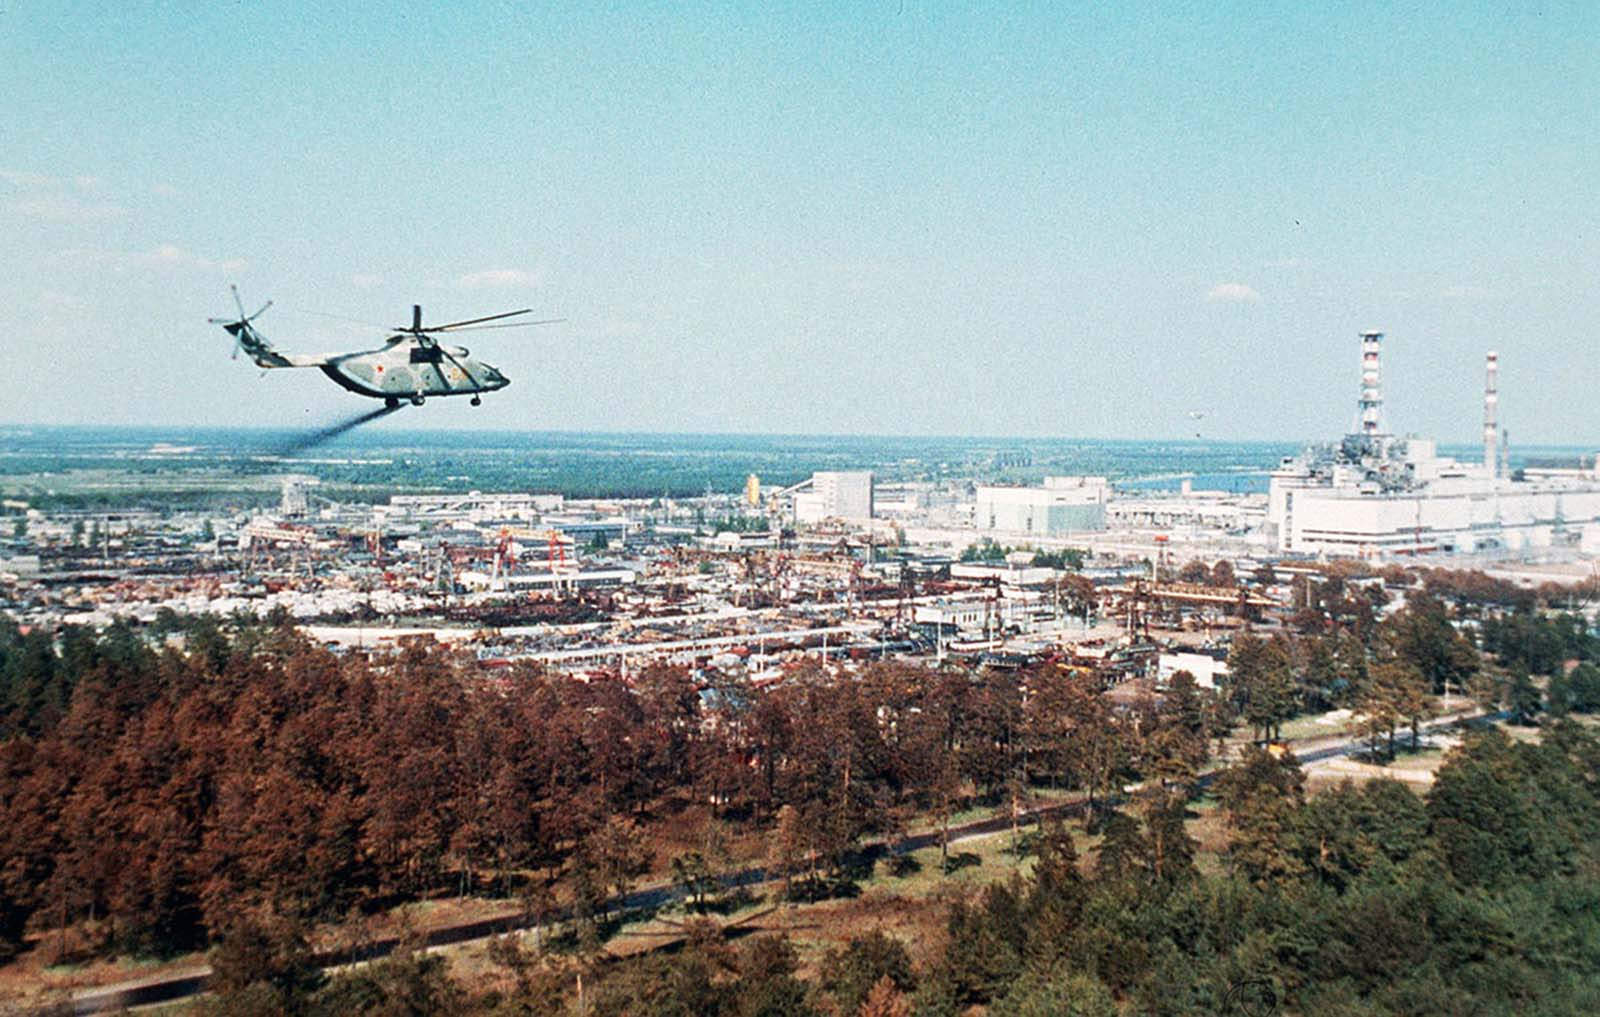 A military helicopter spreads sticky decontamination fluid supposed to reduce the spread of radioactive particles around the Chernobyl nuclear plant a few days after the disaster.